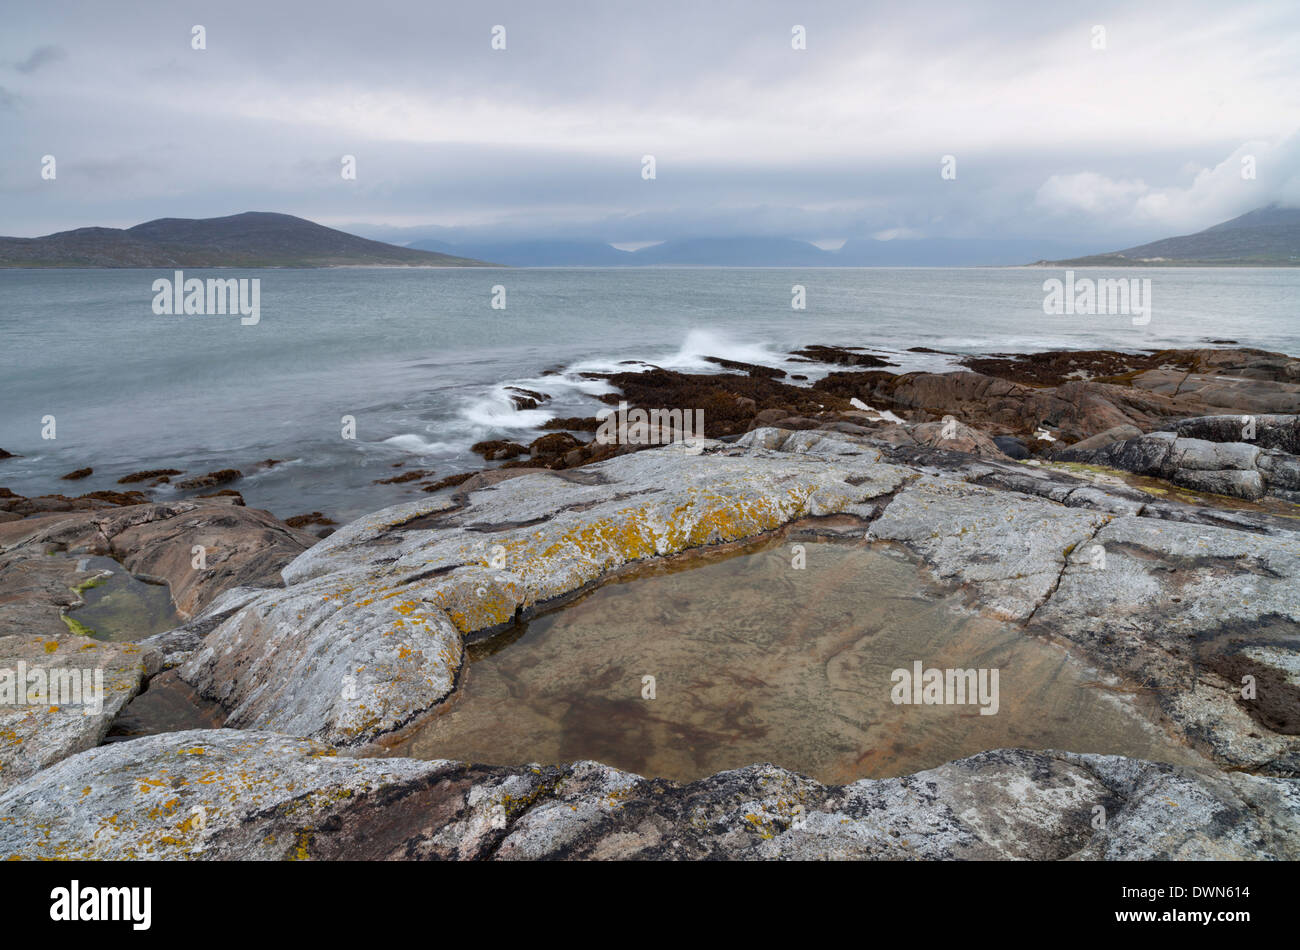 A view across the Sound of Taransay from near Horgabost, Isle of Harris, Outer Hebrides, Scotland, United Kingdom, Europe - Stock Image